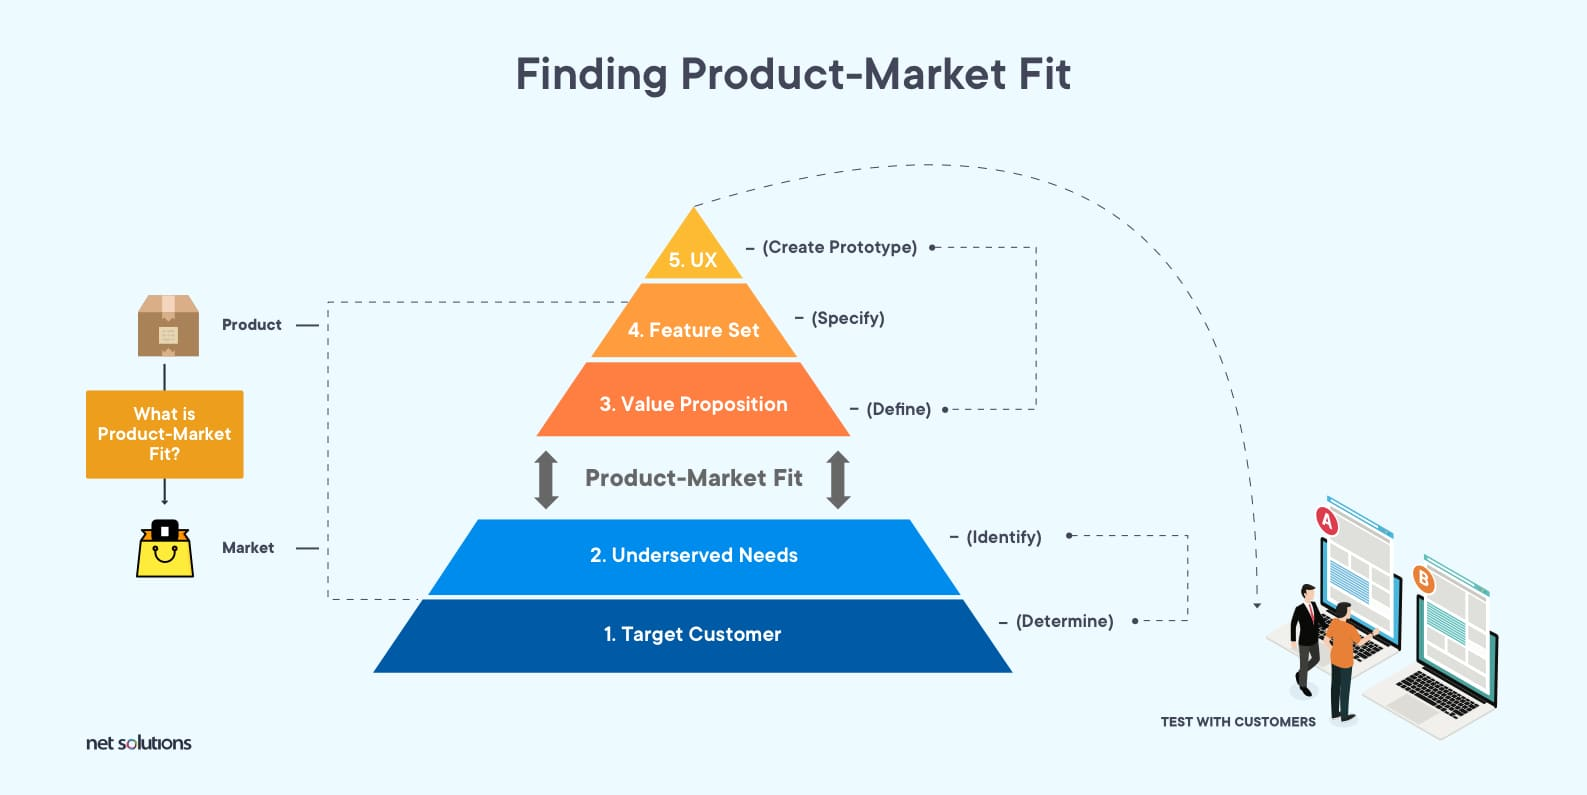 The Product-Market Fit Pyramid: Finding the demand quotient of the product